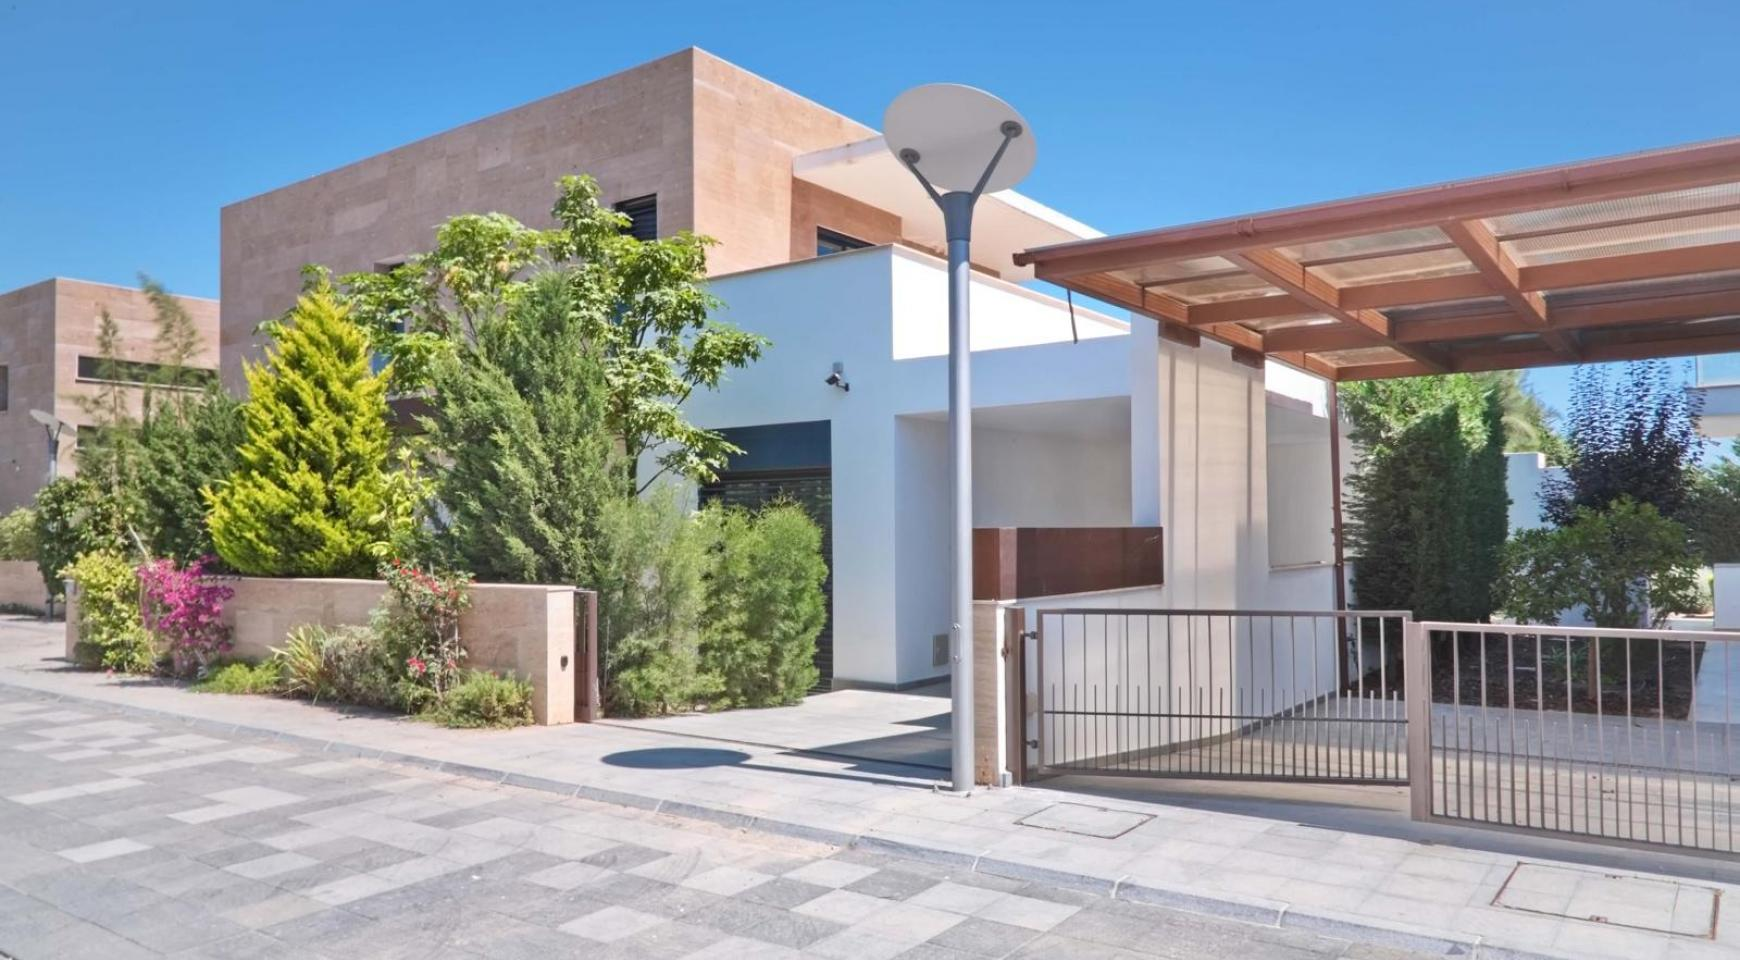 New Luxurious 3 Bedroom Villa  within a Gated Project near the Sea - 3